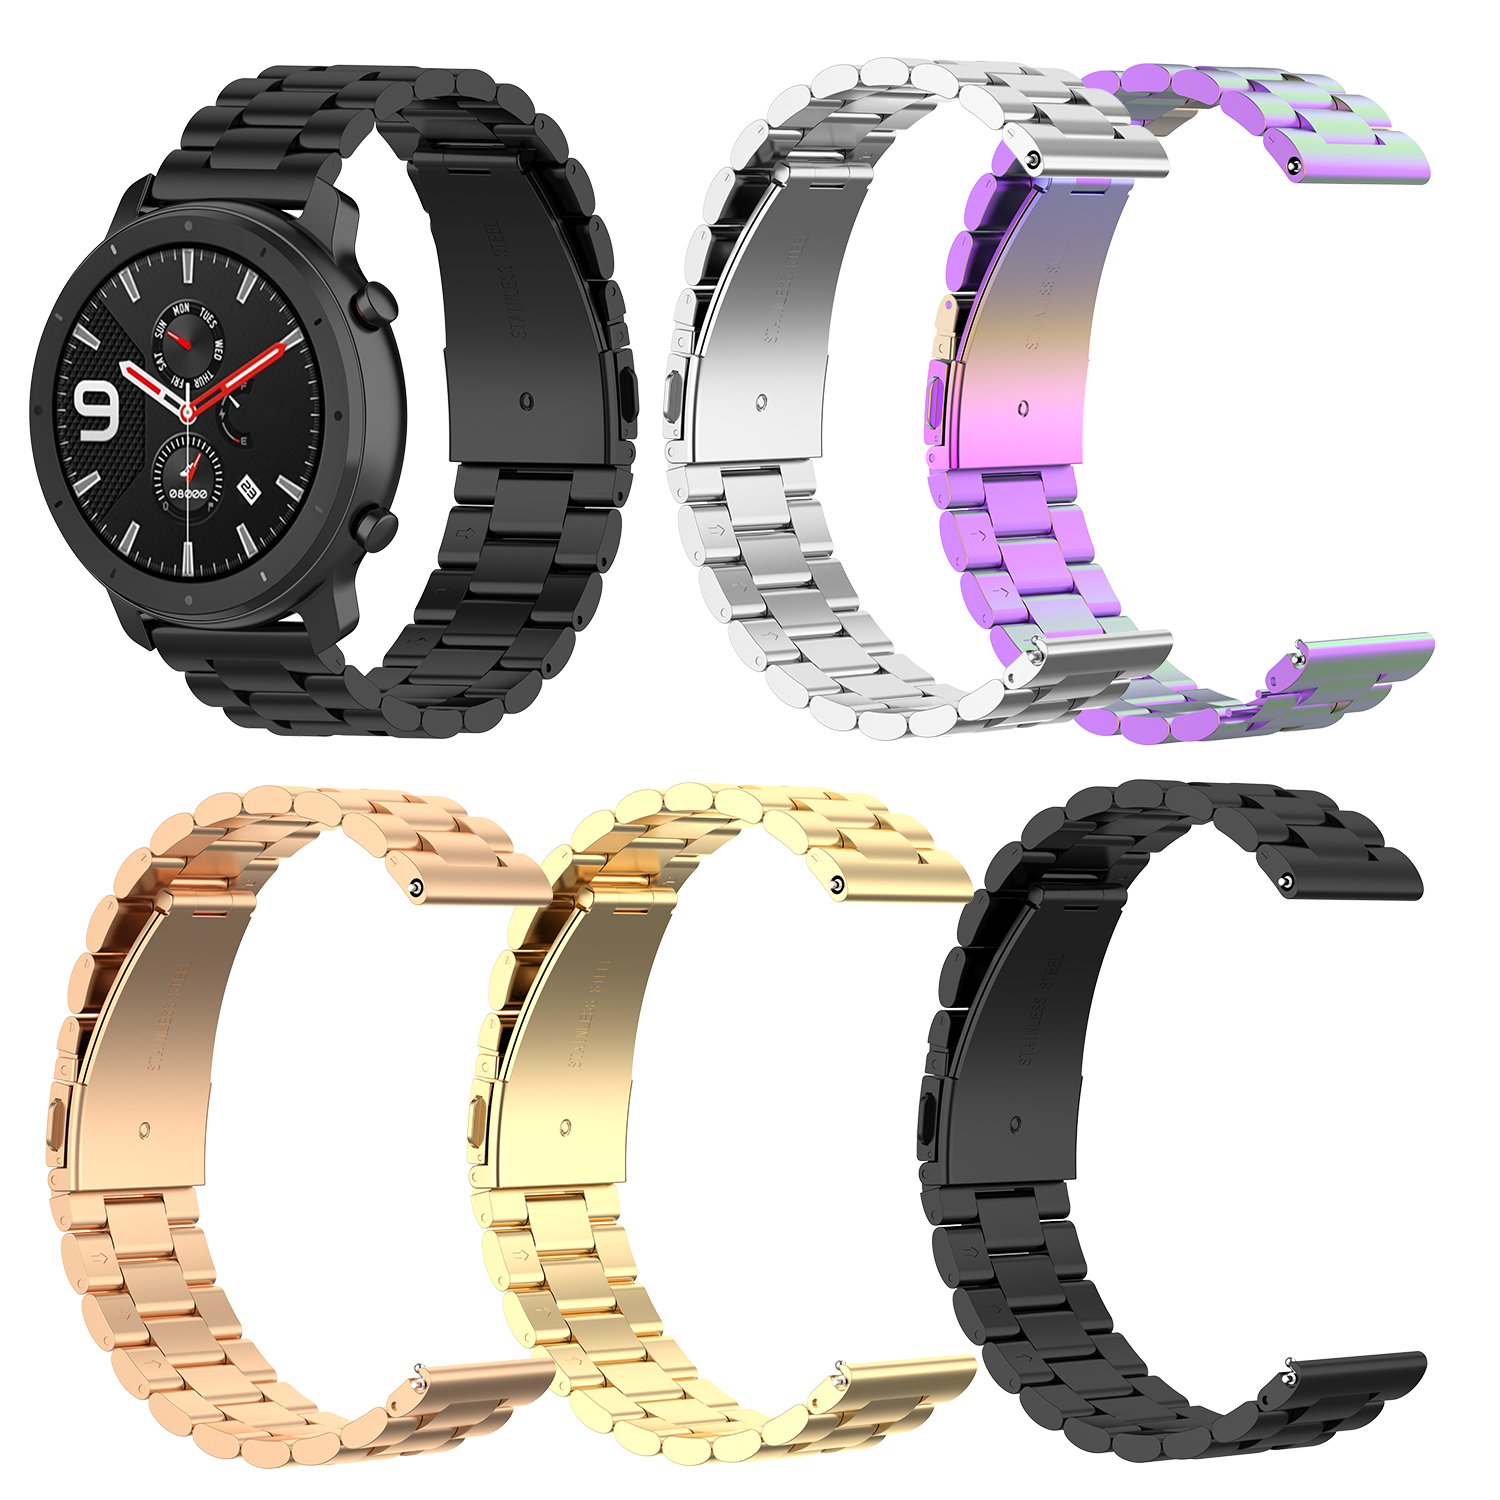 20mm Stainless Fitness Band For Amazfit GTR 42mm Samsung Galaxy Watch Active 42mm 22mm Strap Belt For Amazfit GTR 47mm Ticwatch